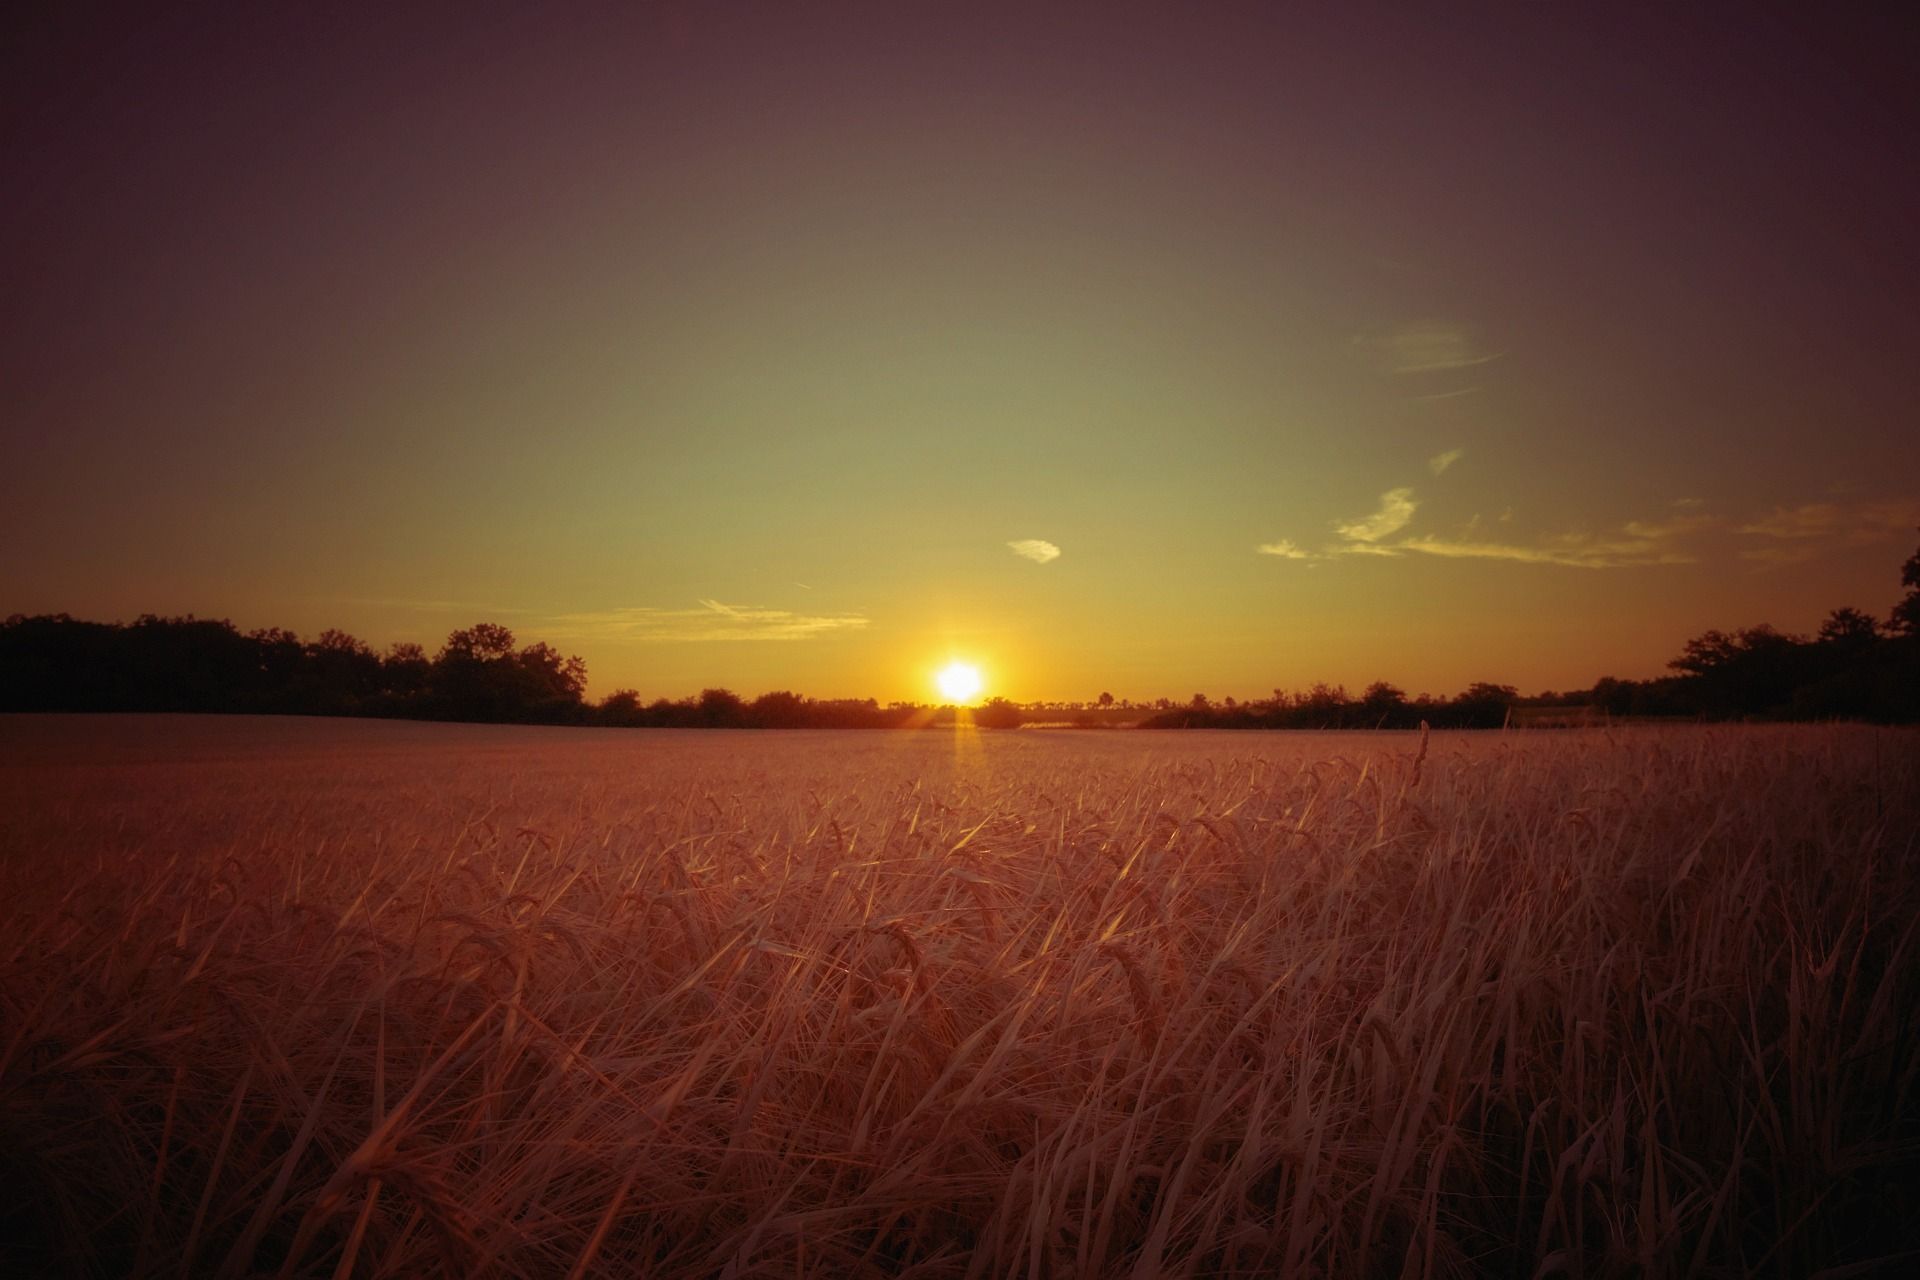 Sunrise in a summer field